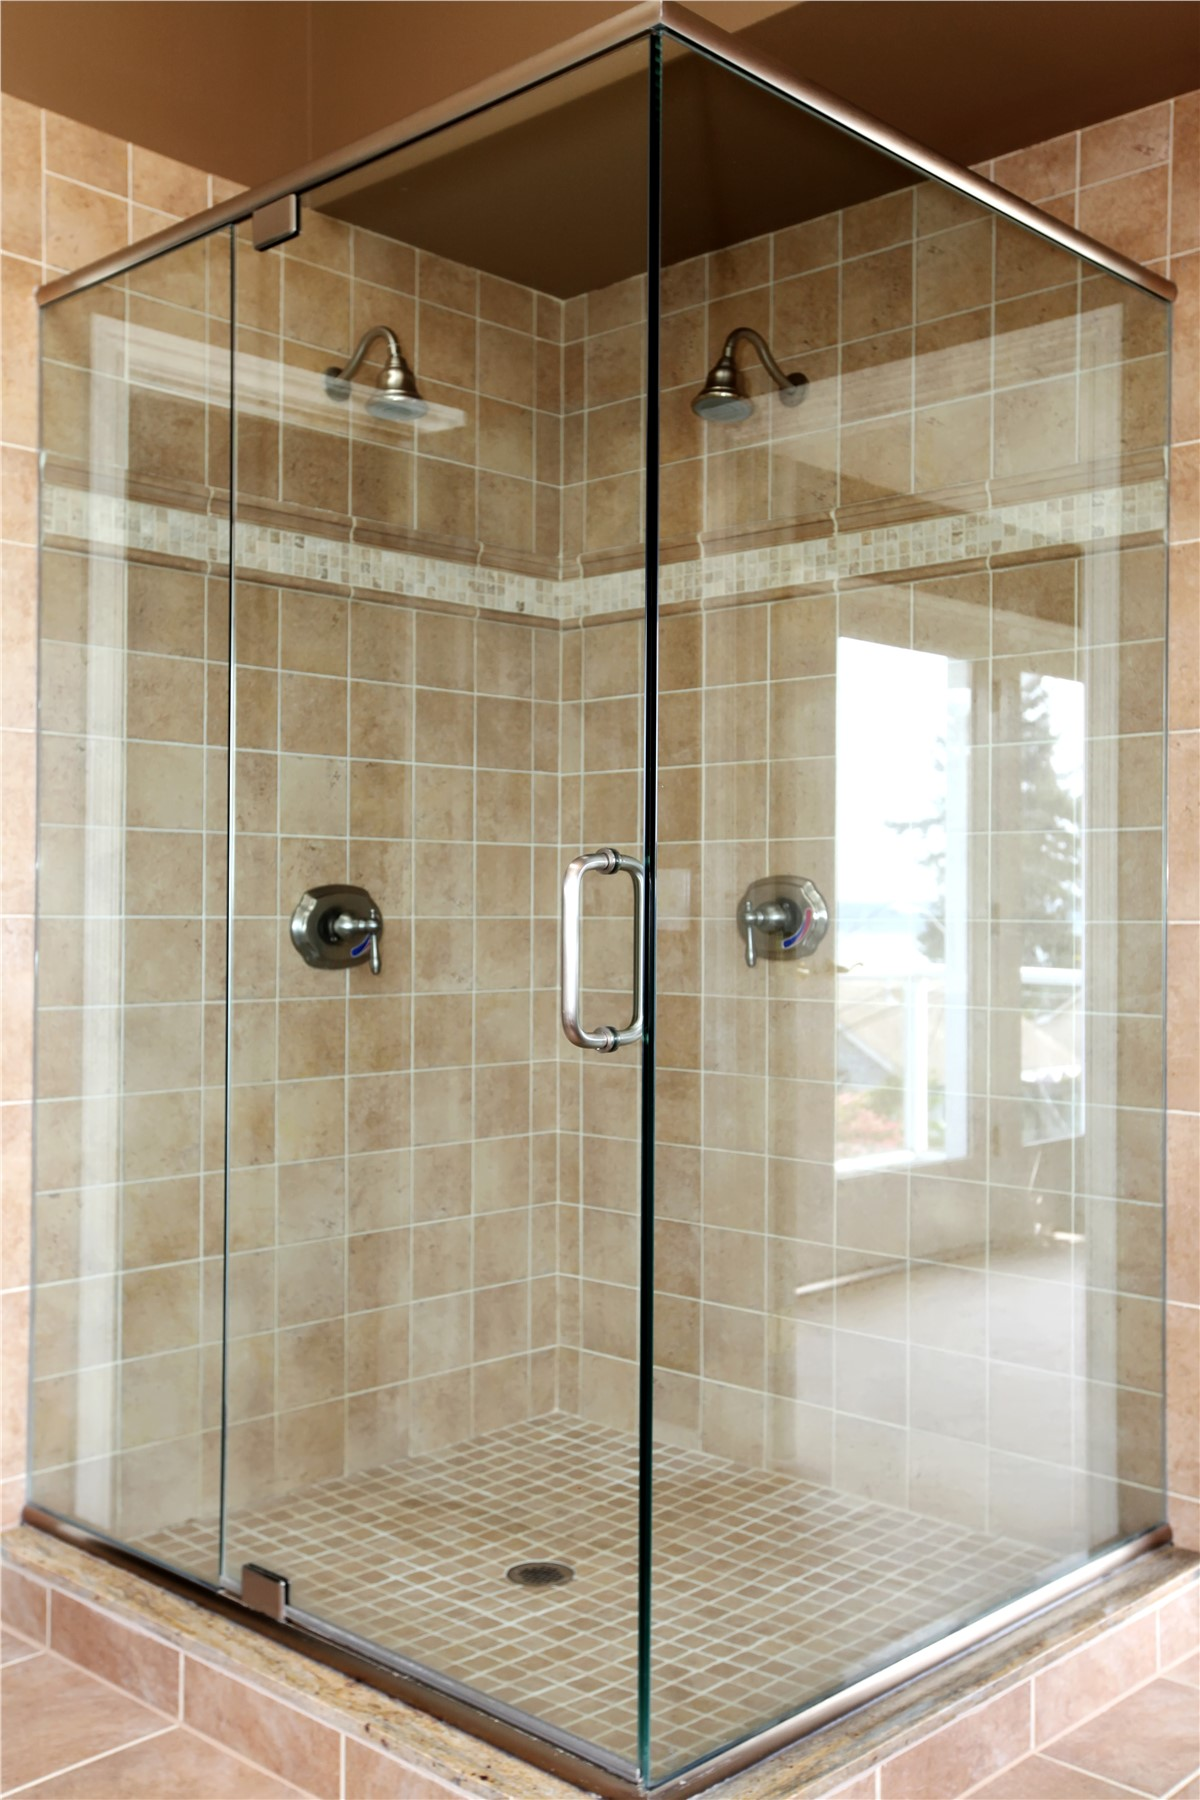 Shower Remodel Pittsburgh Bathroom Remodeling Legacy Remodeling - Bathroom shower renovations photos